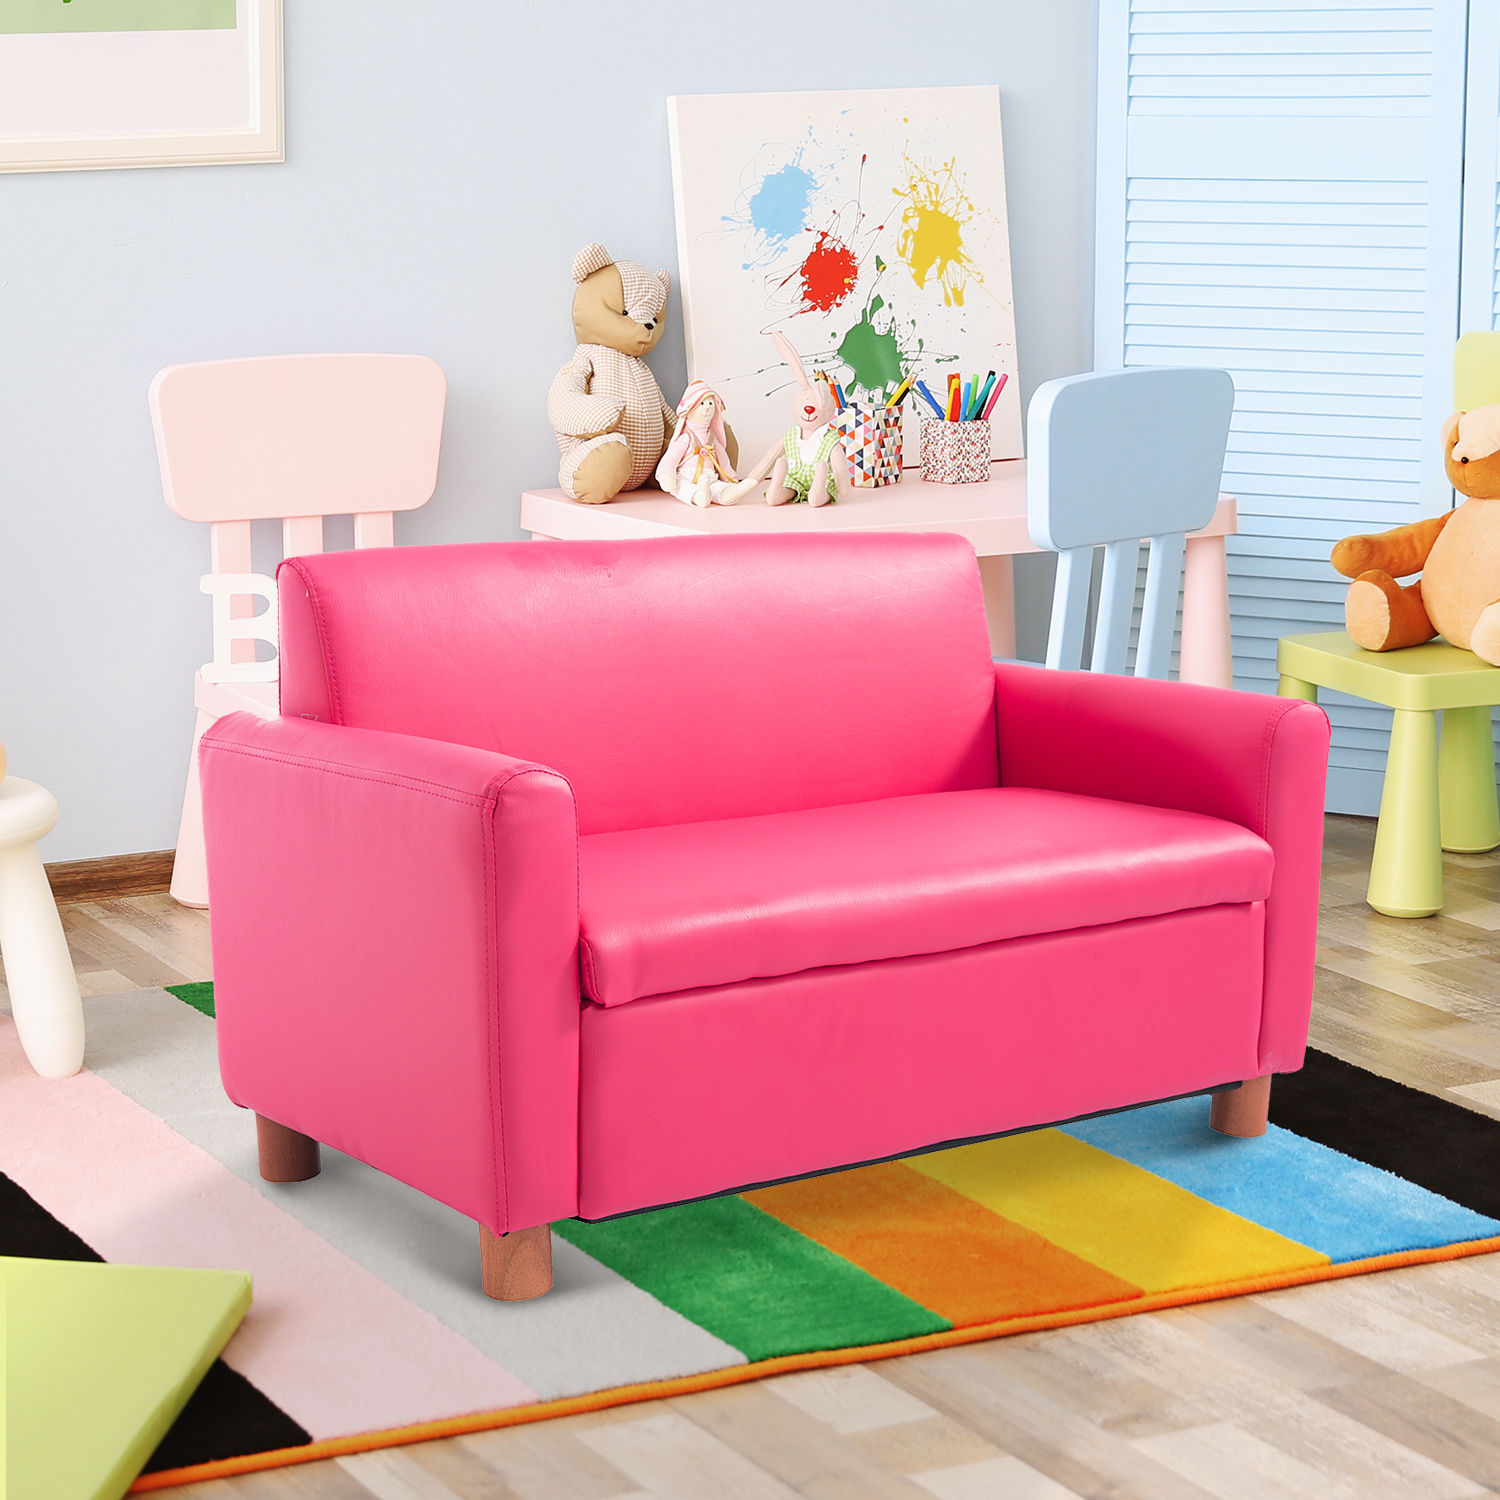 Toddler Sofa Chair Pink Double Kid Toddler Sofa Armchair Recliner Pu Leather